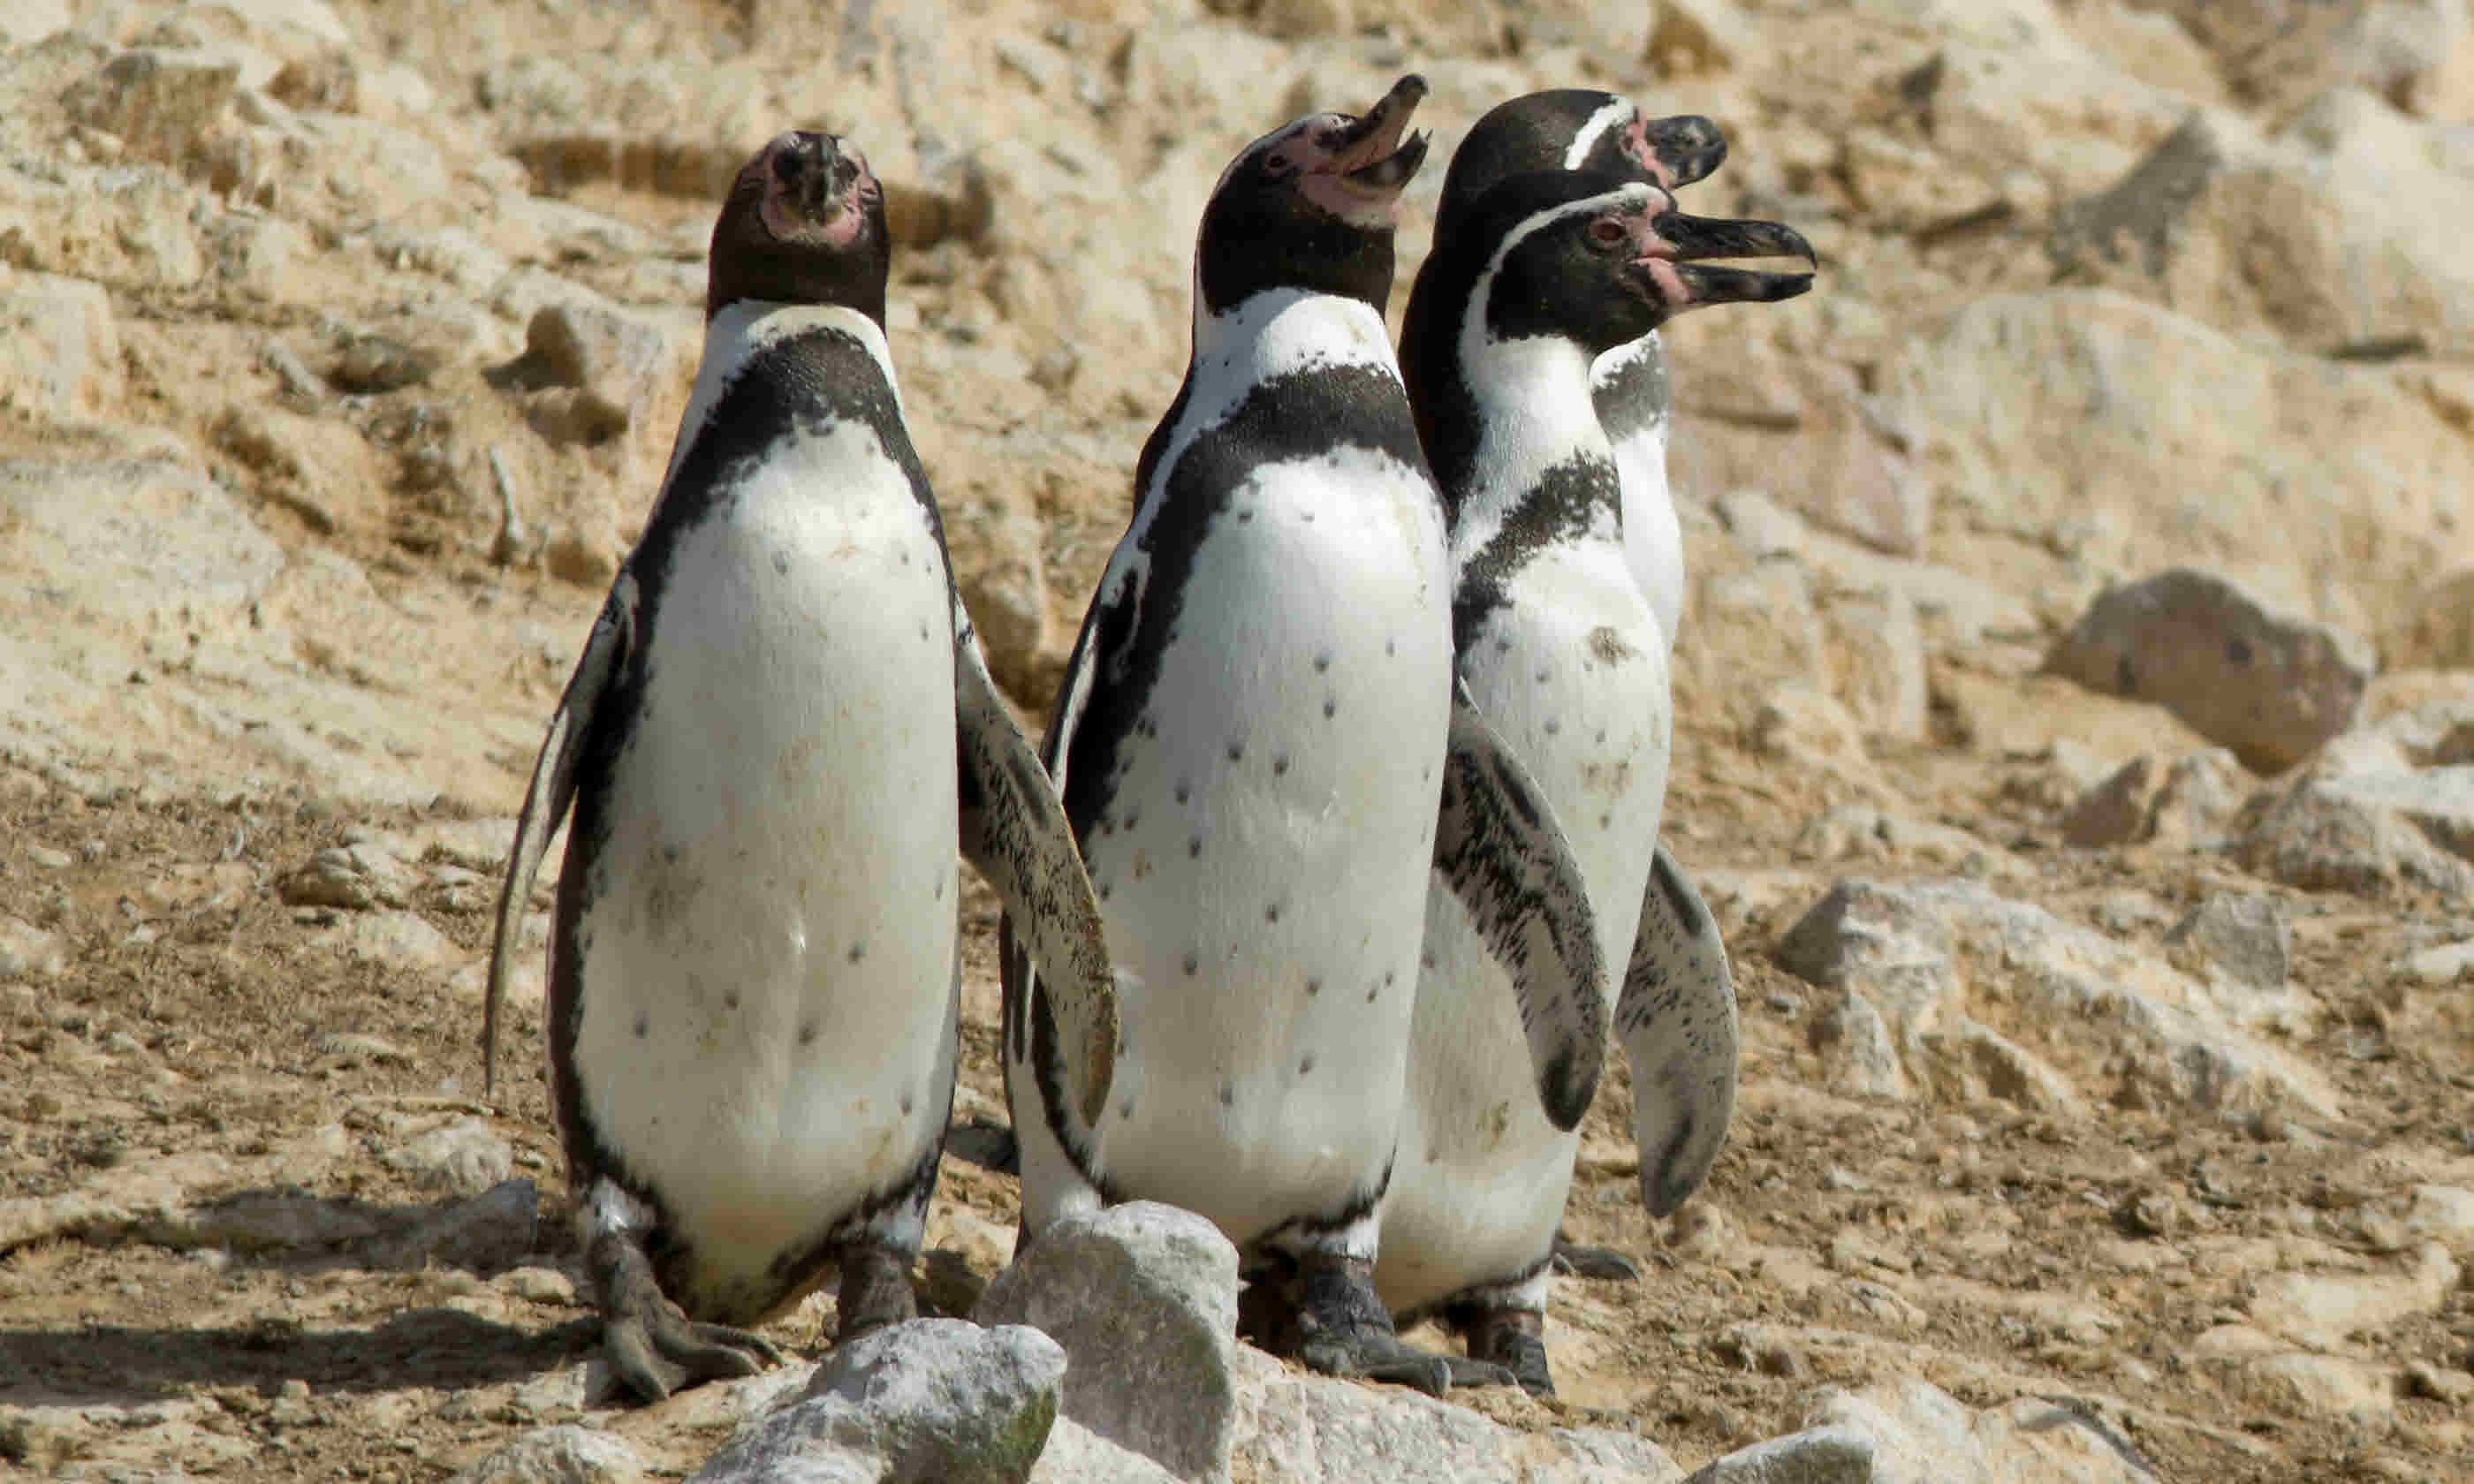 Humboldt Penguins at Paracas National Park, Peru (Shutterstock)